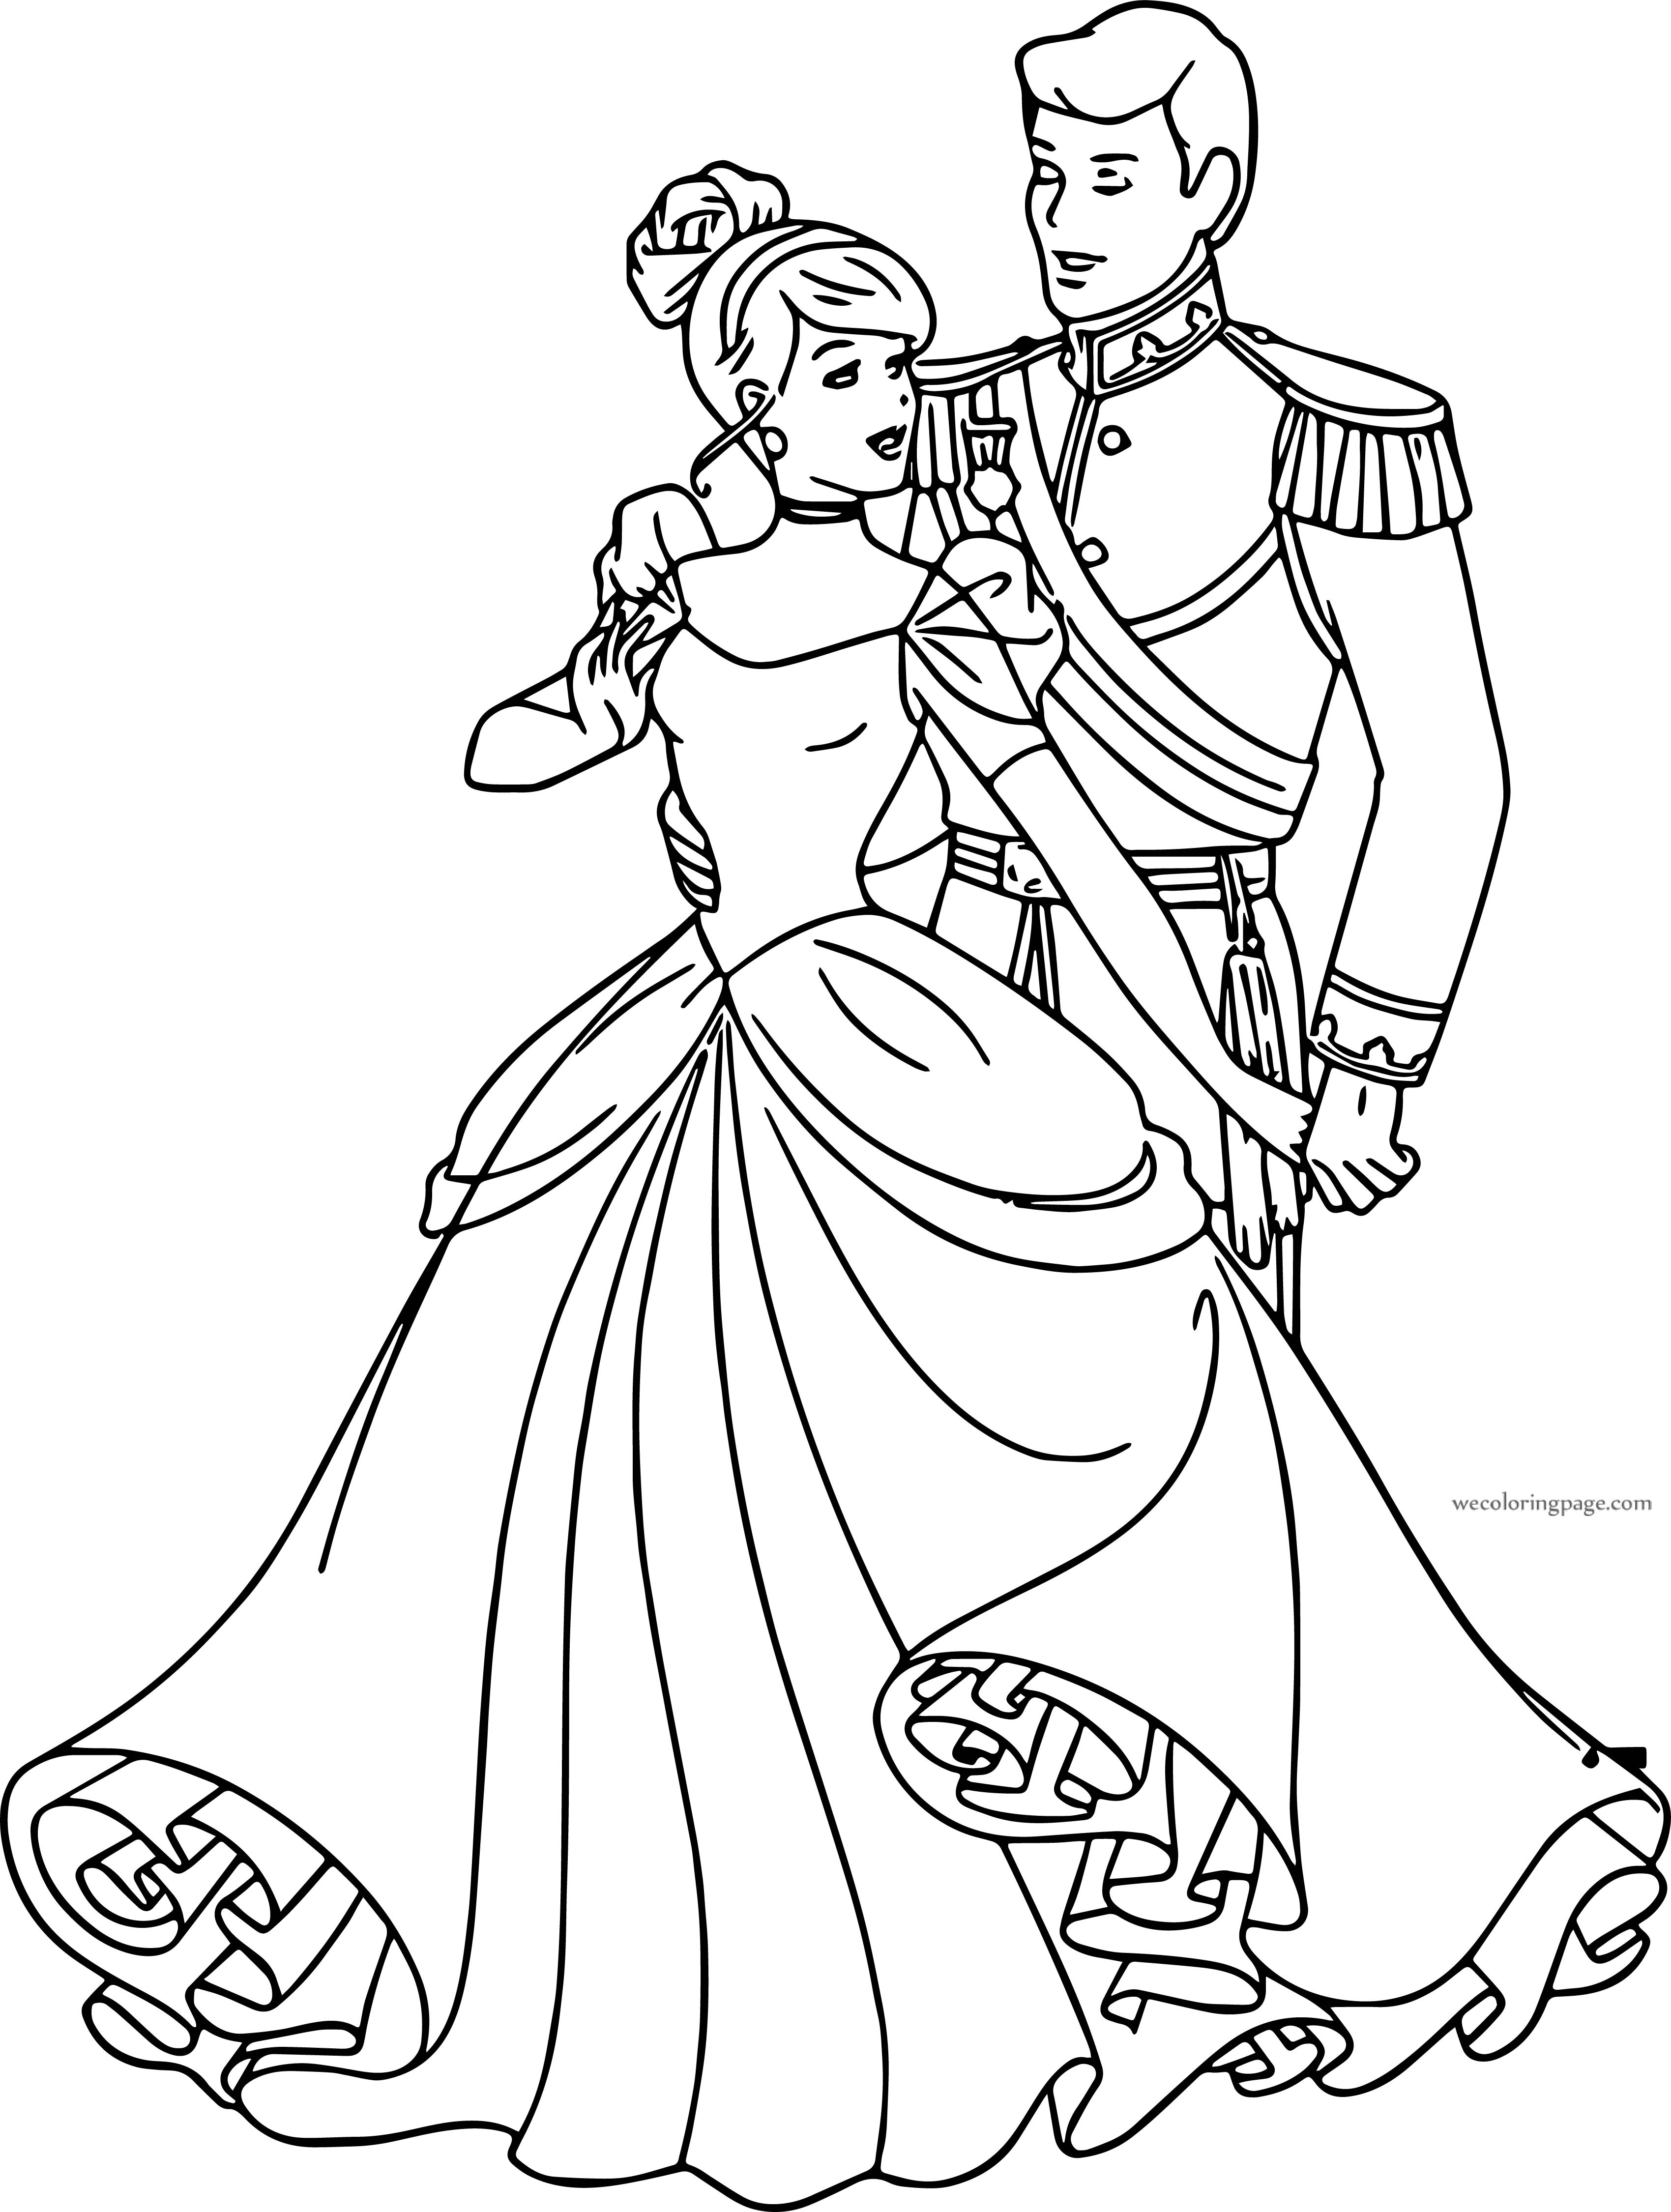 Cinderella And Prince Charming Going Together Coloring ...